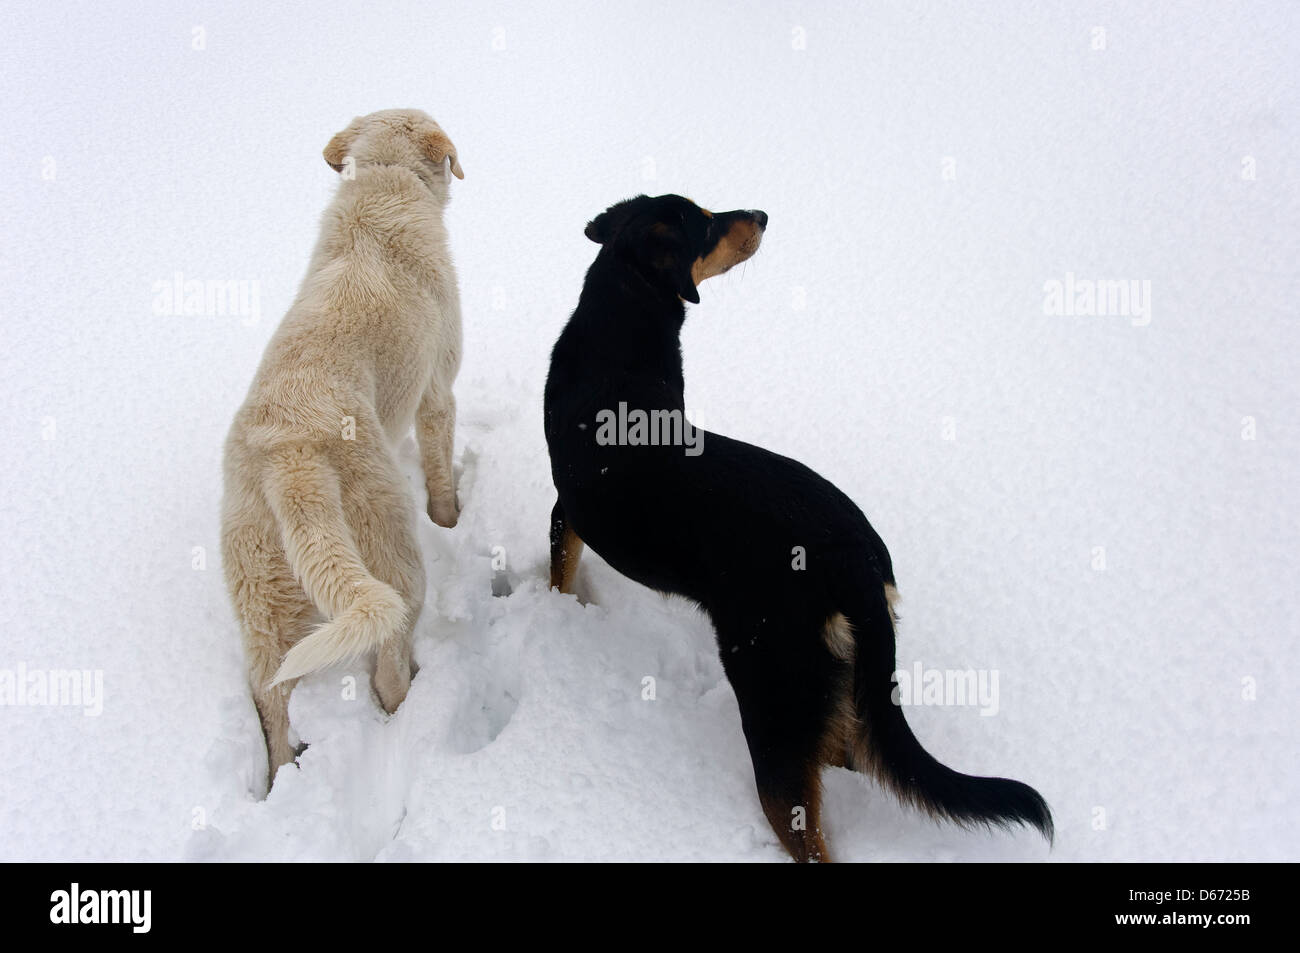 Two dogs side by side marveling at fresh snow - Stock Image